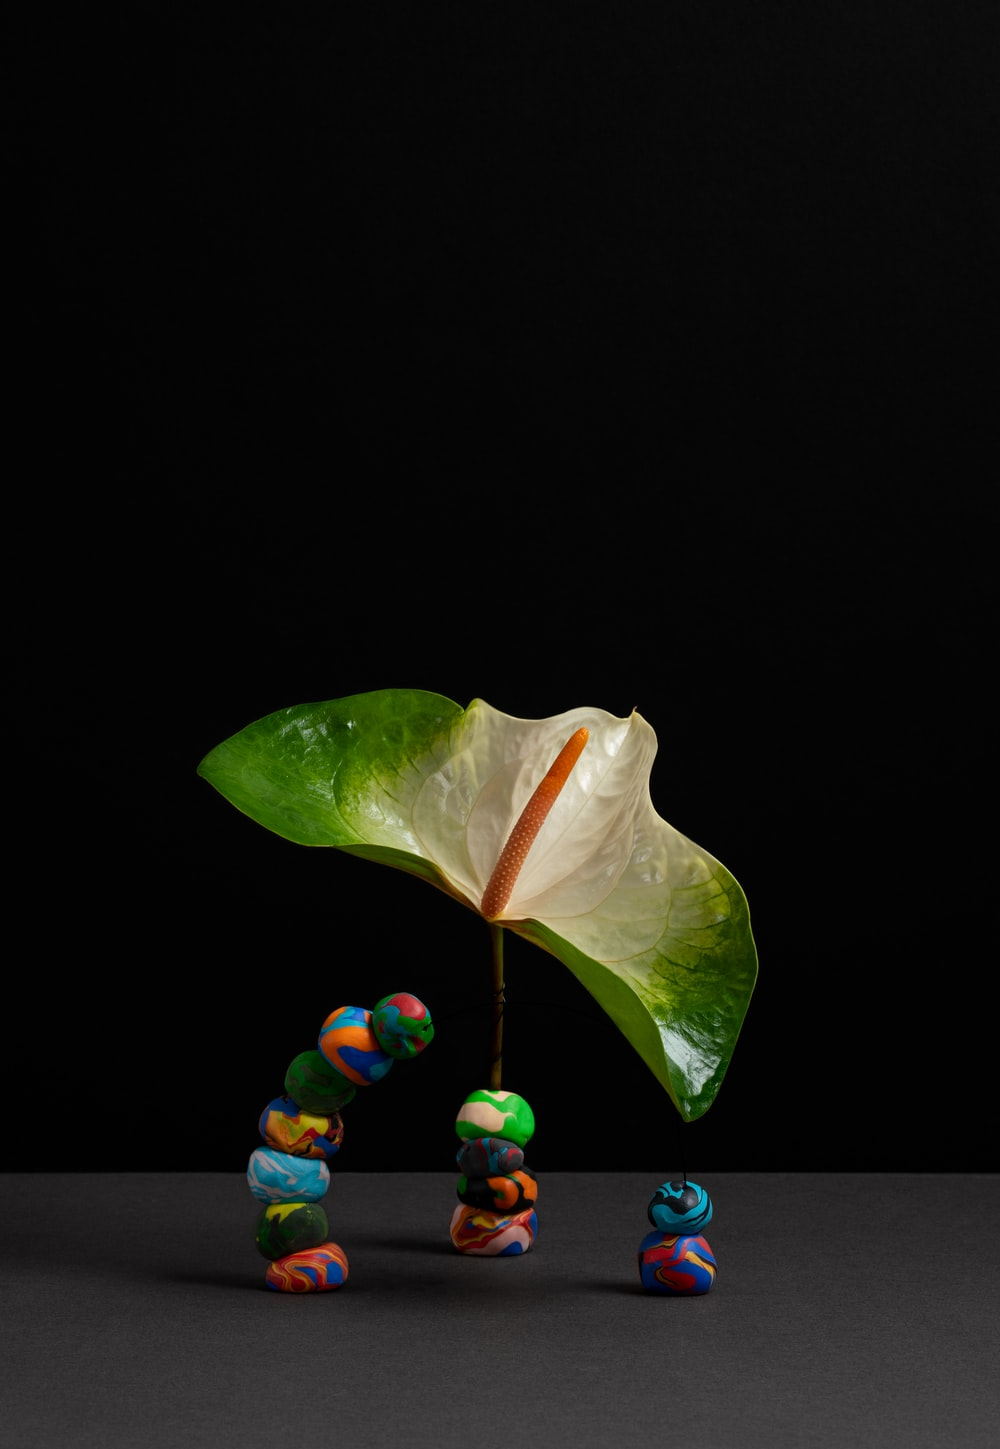 green and yellow leaf with black background